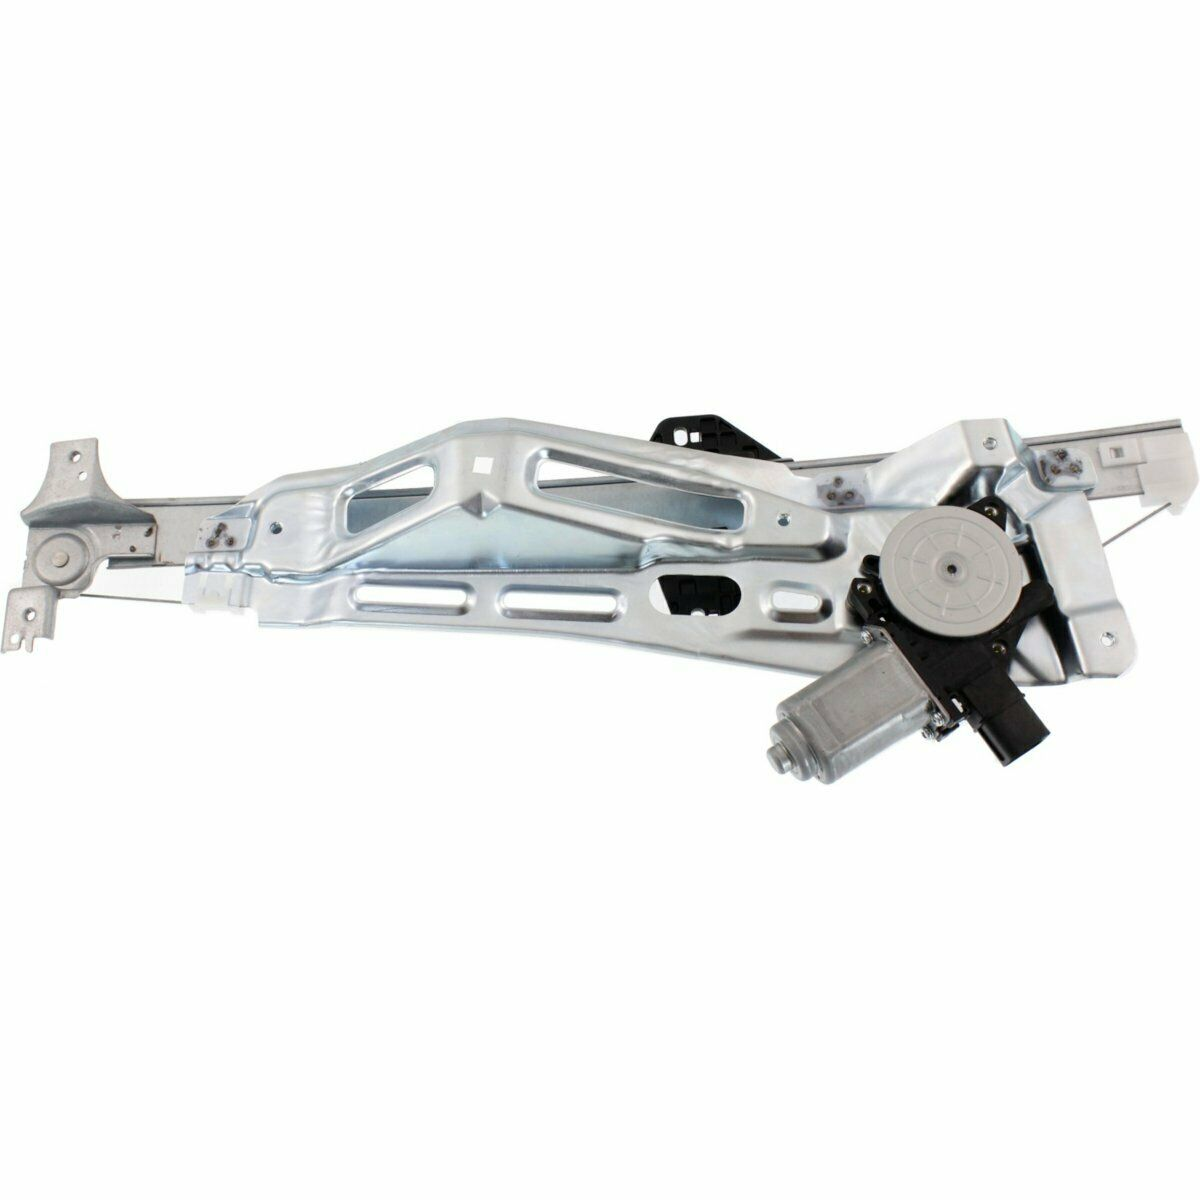 NEW FRONT DRIVER SIDE WINDOW REGULATOR FOR ACURA MDX 2007